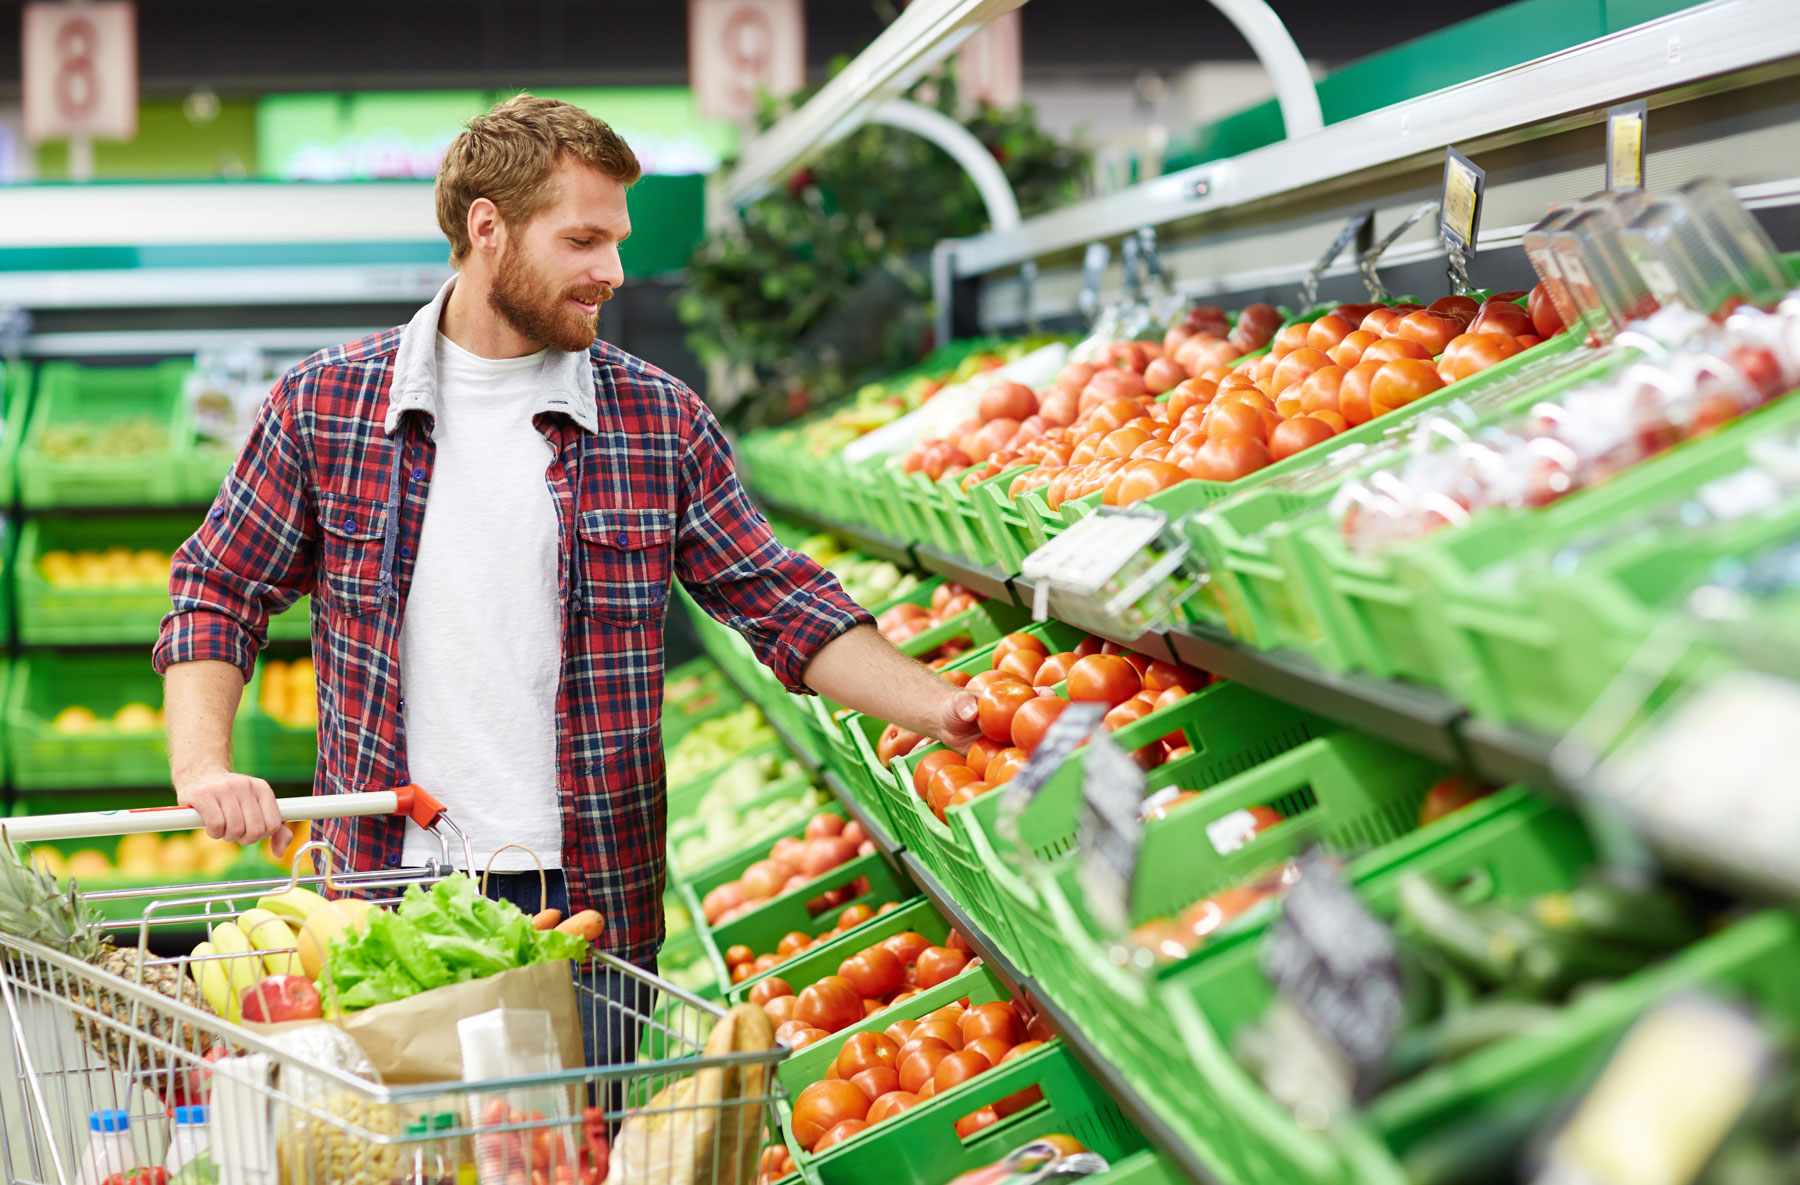 man shopping in produce aisle of grocery store